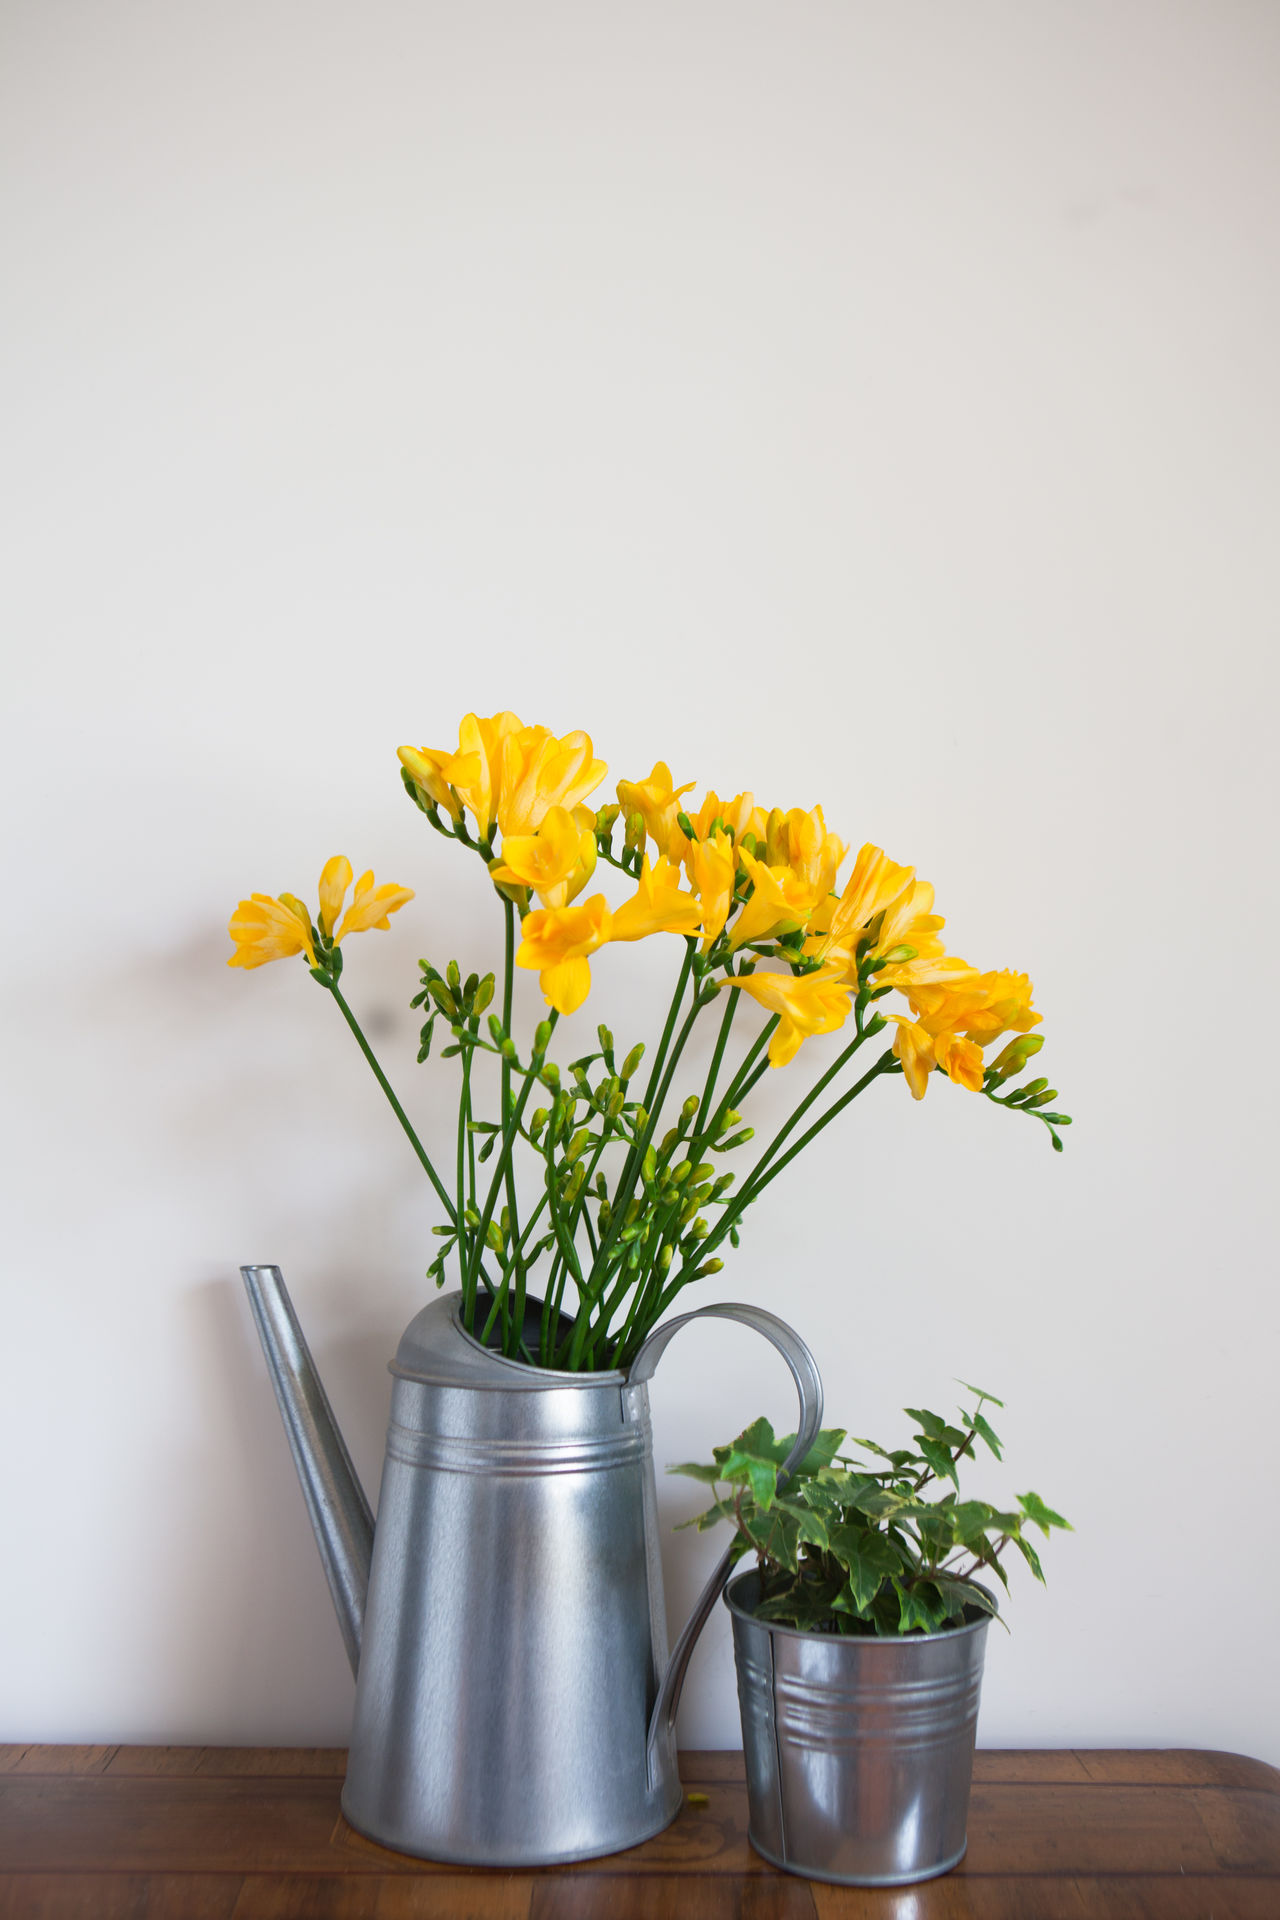 Bouquet Design Flower Flower Head Flower Pot Fragility Freesia Freshness Home Indoors  Ivy No People Plant Studio Shot Vase Yellow